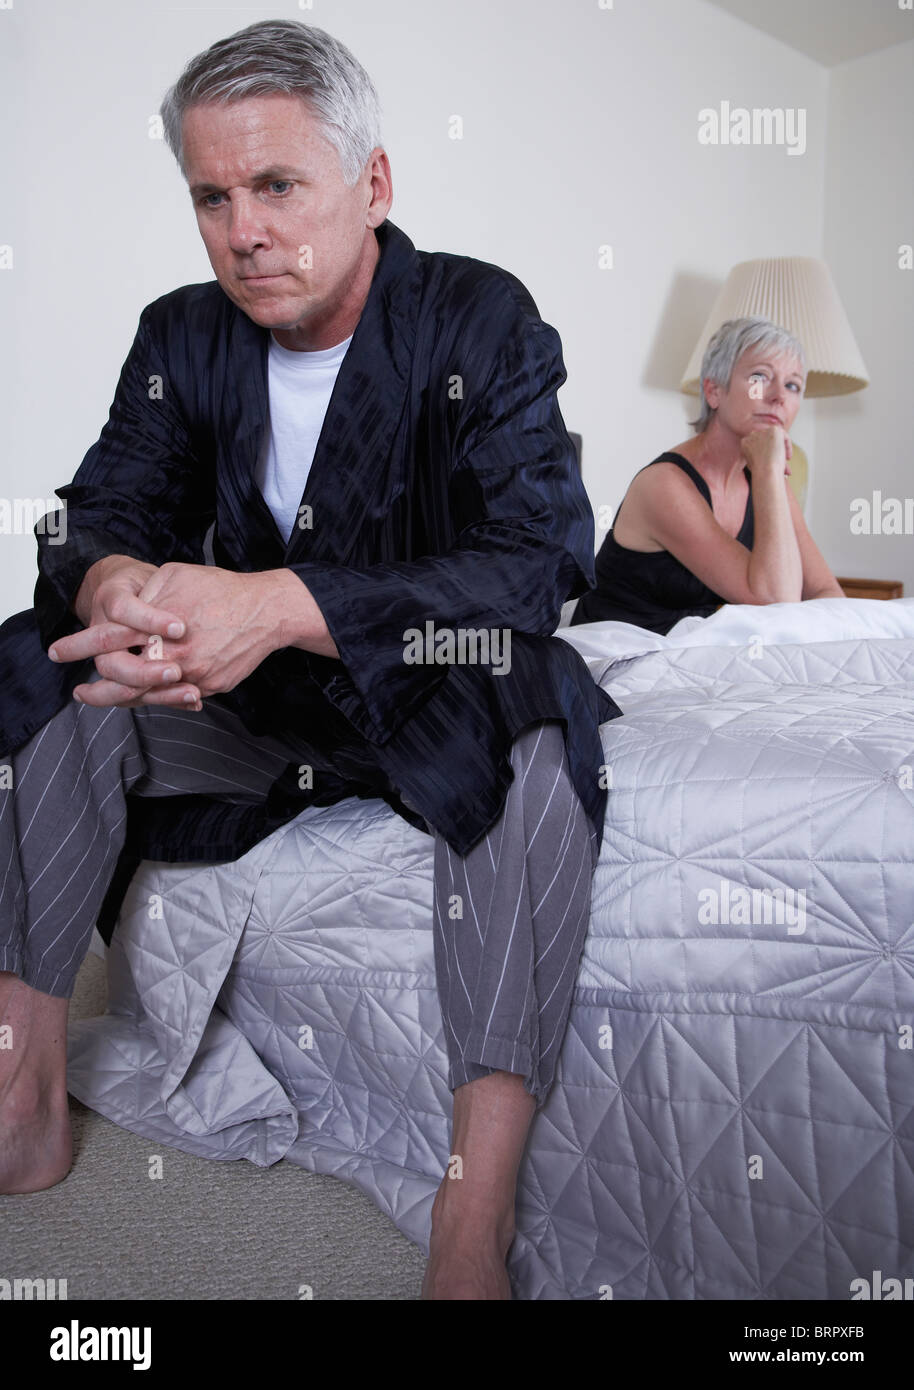 Mature couple sitting apart on bed - Stock Image